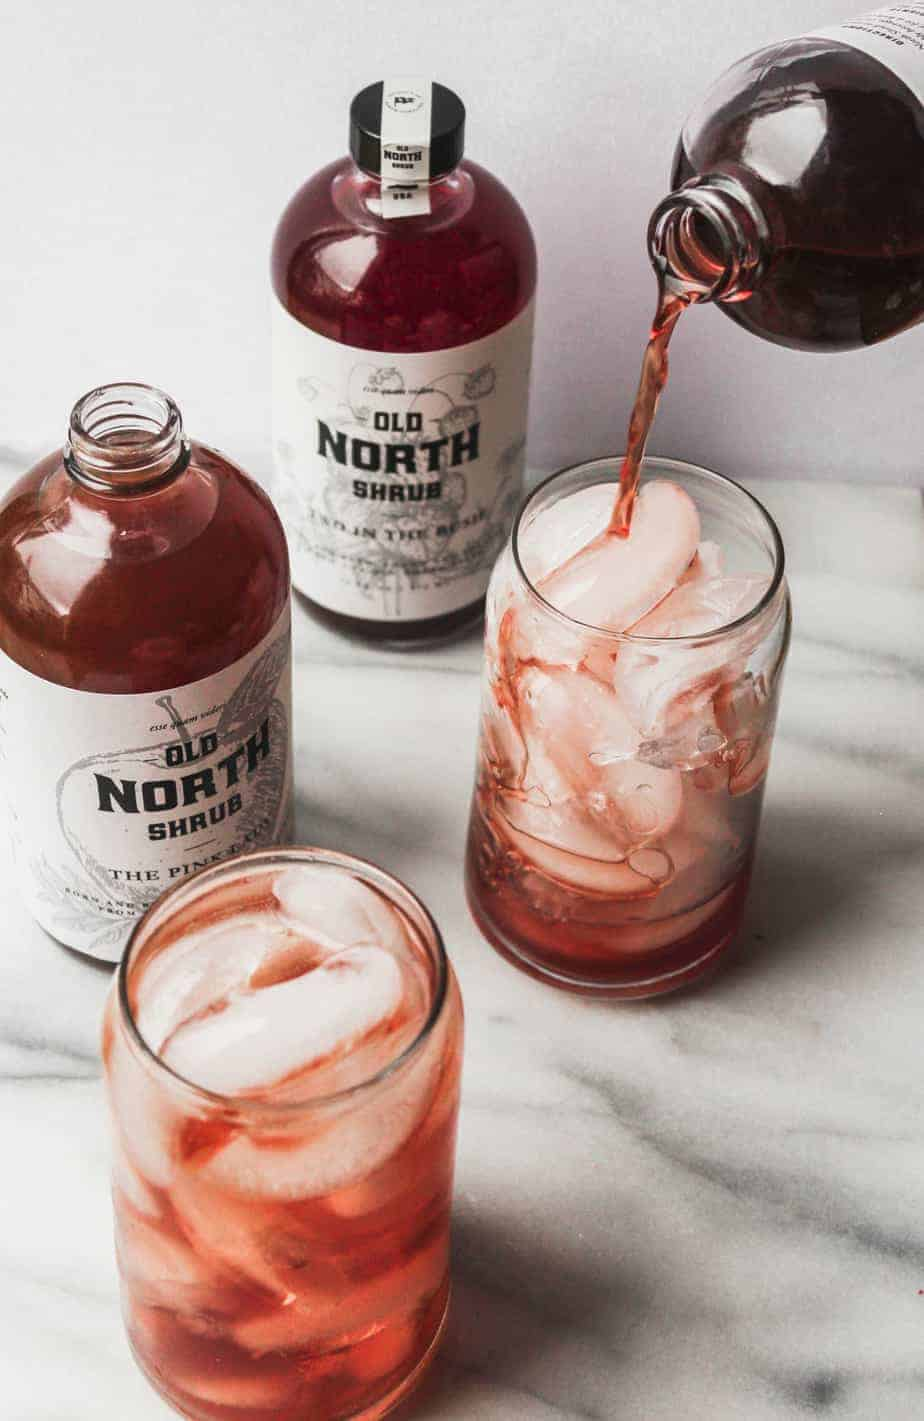 Charlotte Gift Guide Old North Shrub